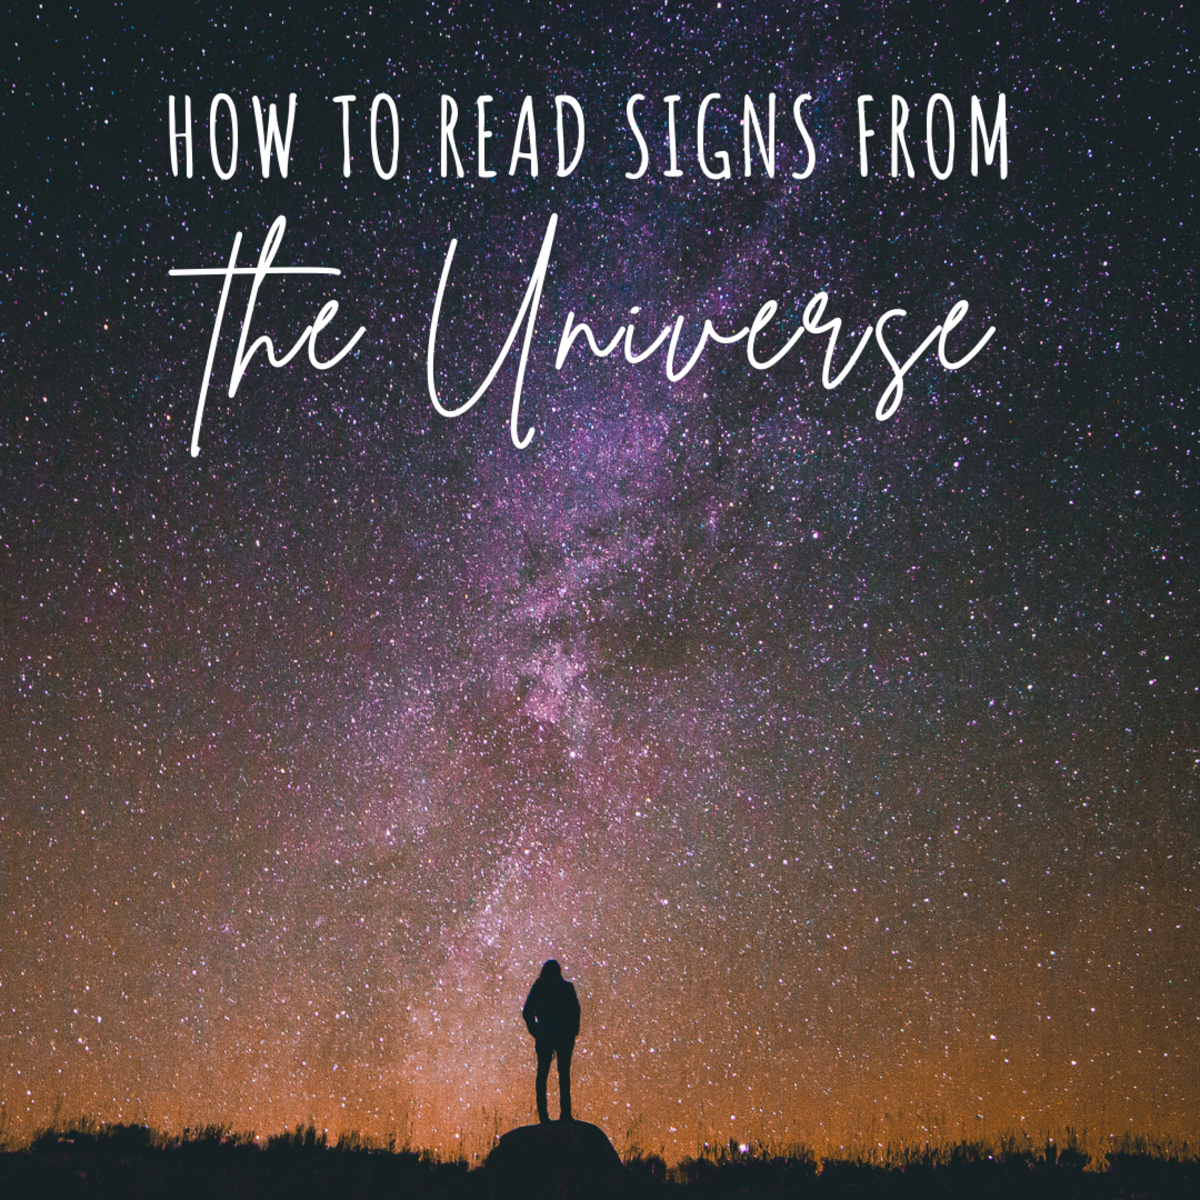 If you stop and listen, you can learn how to read and interpret signs from the universe.